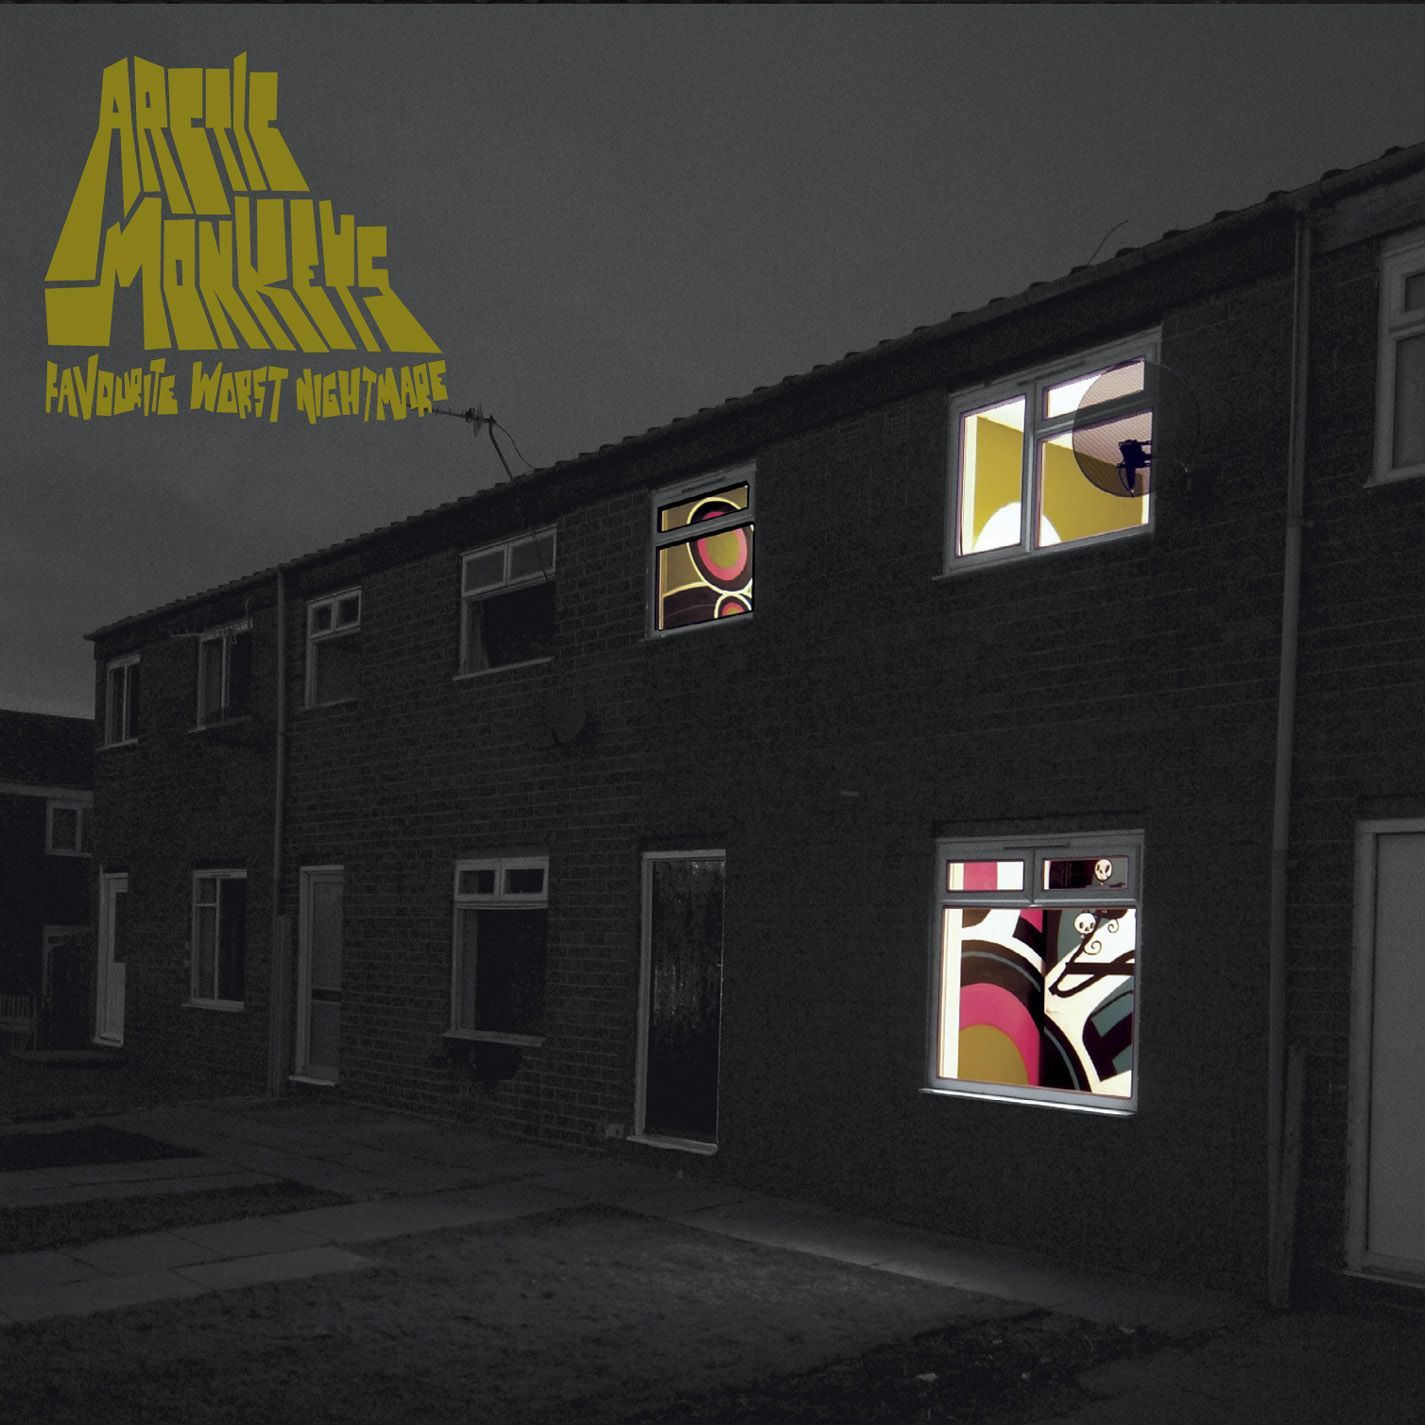 Arctic Monkeys - Favourite Worst Nightmare album cover